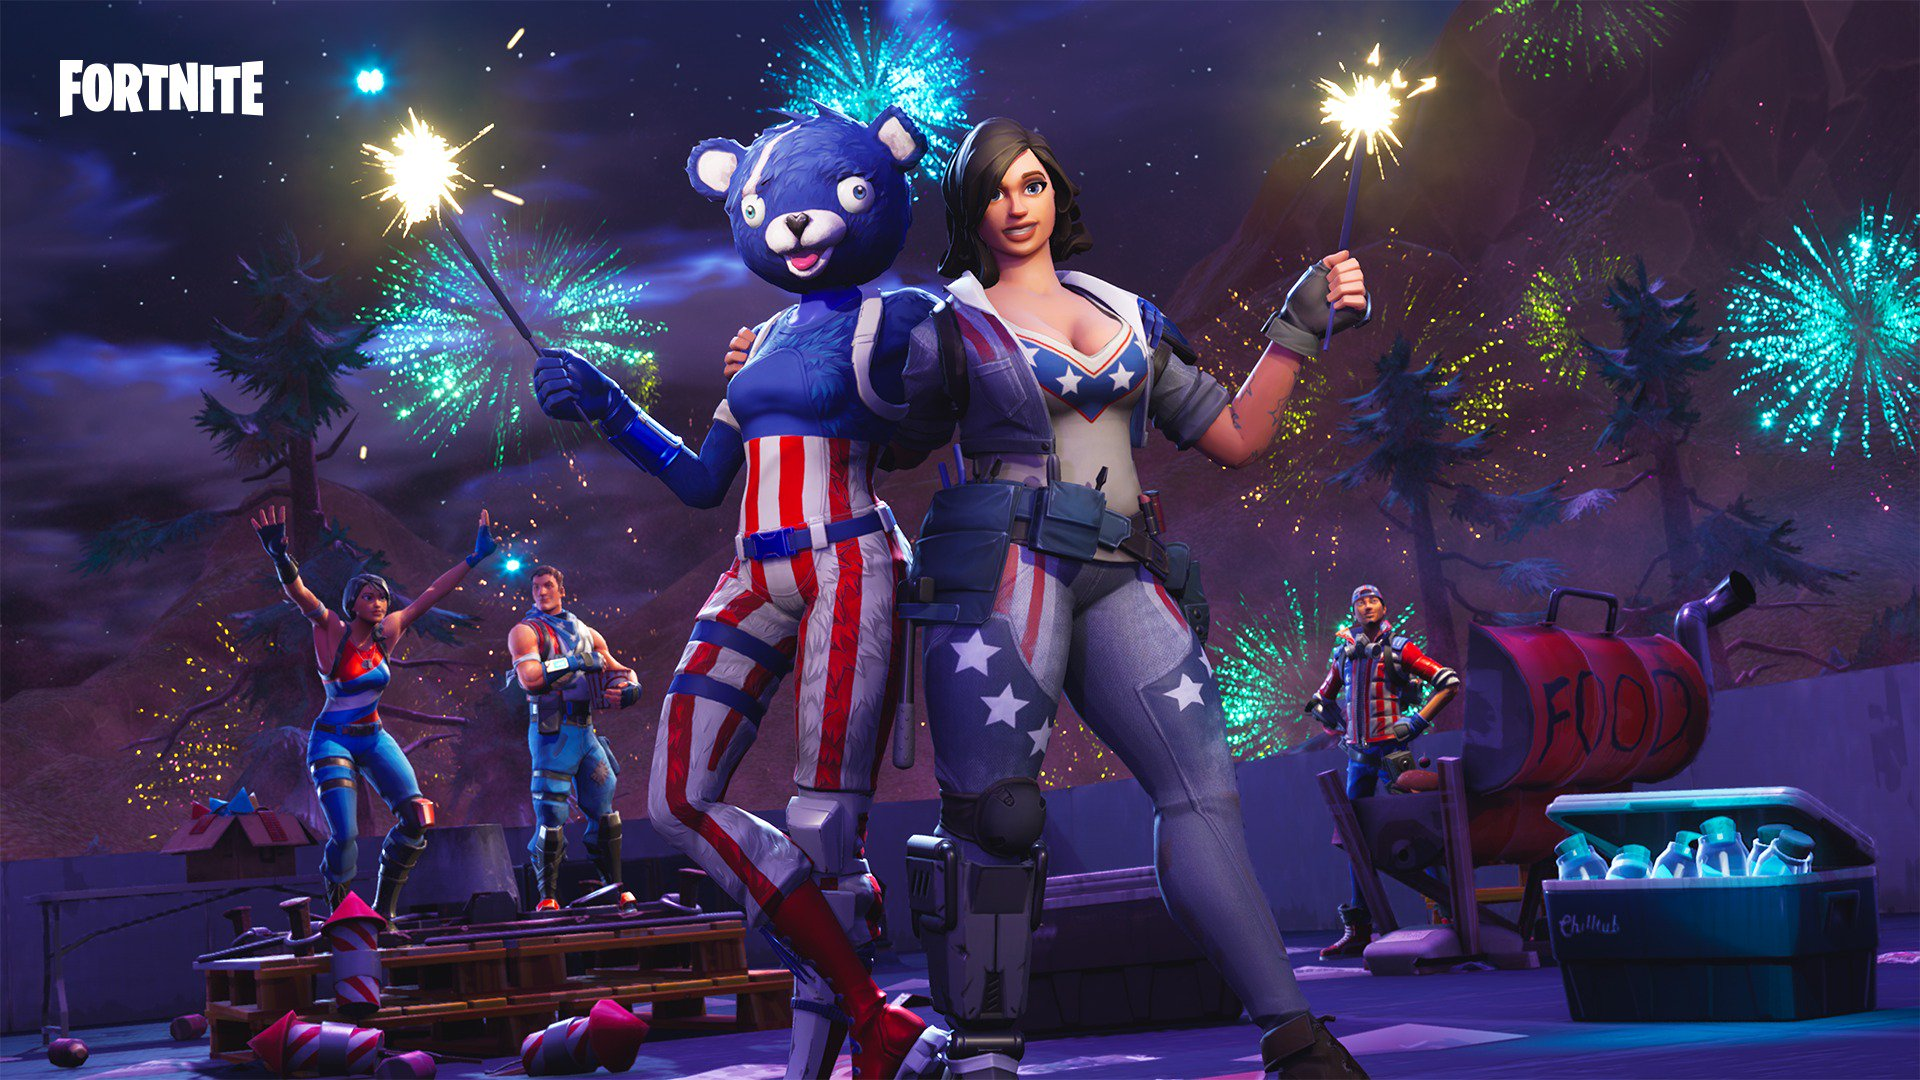 Fortnite Launch Fireworks Locations: Where are the fireworks along the river bank?